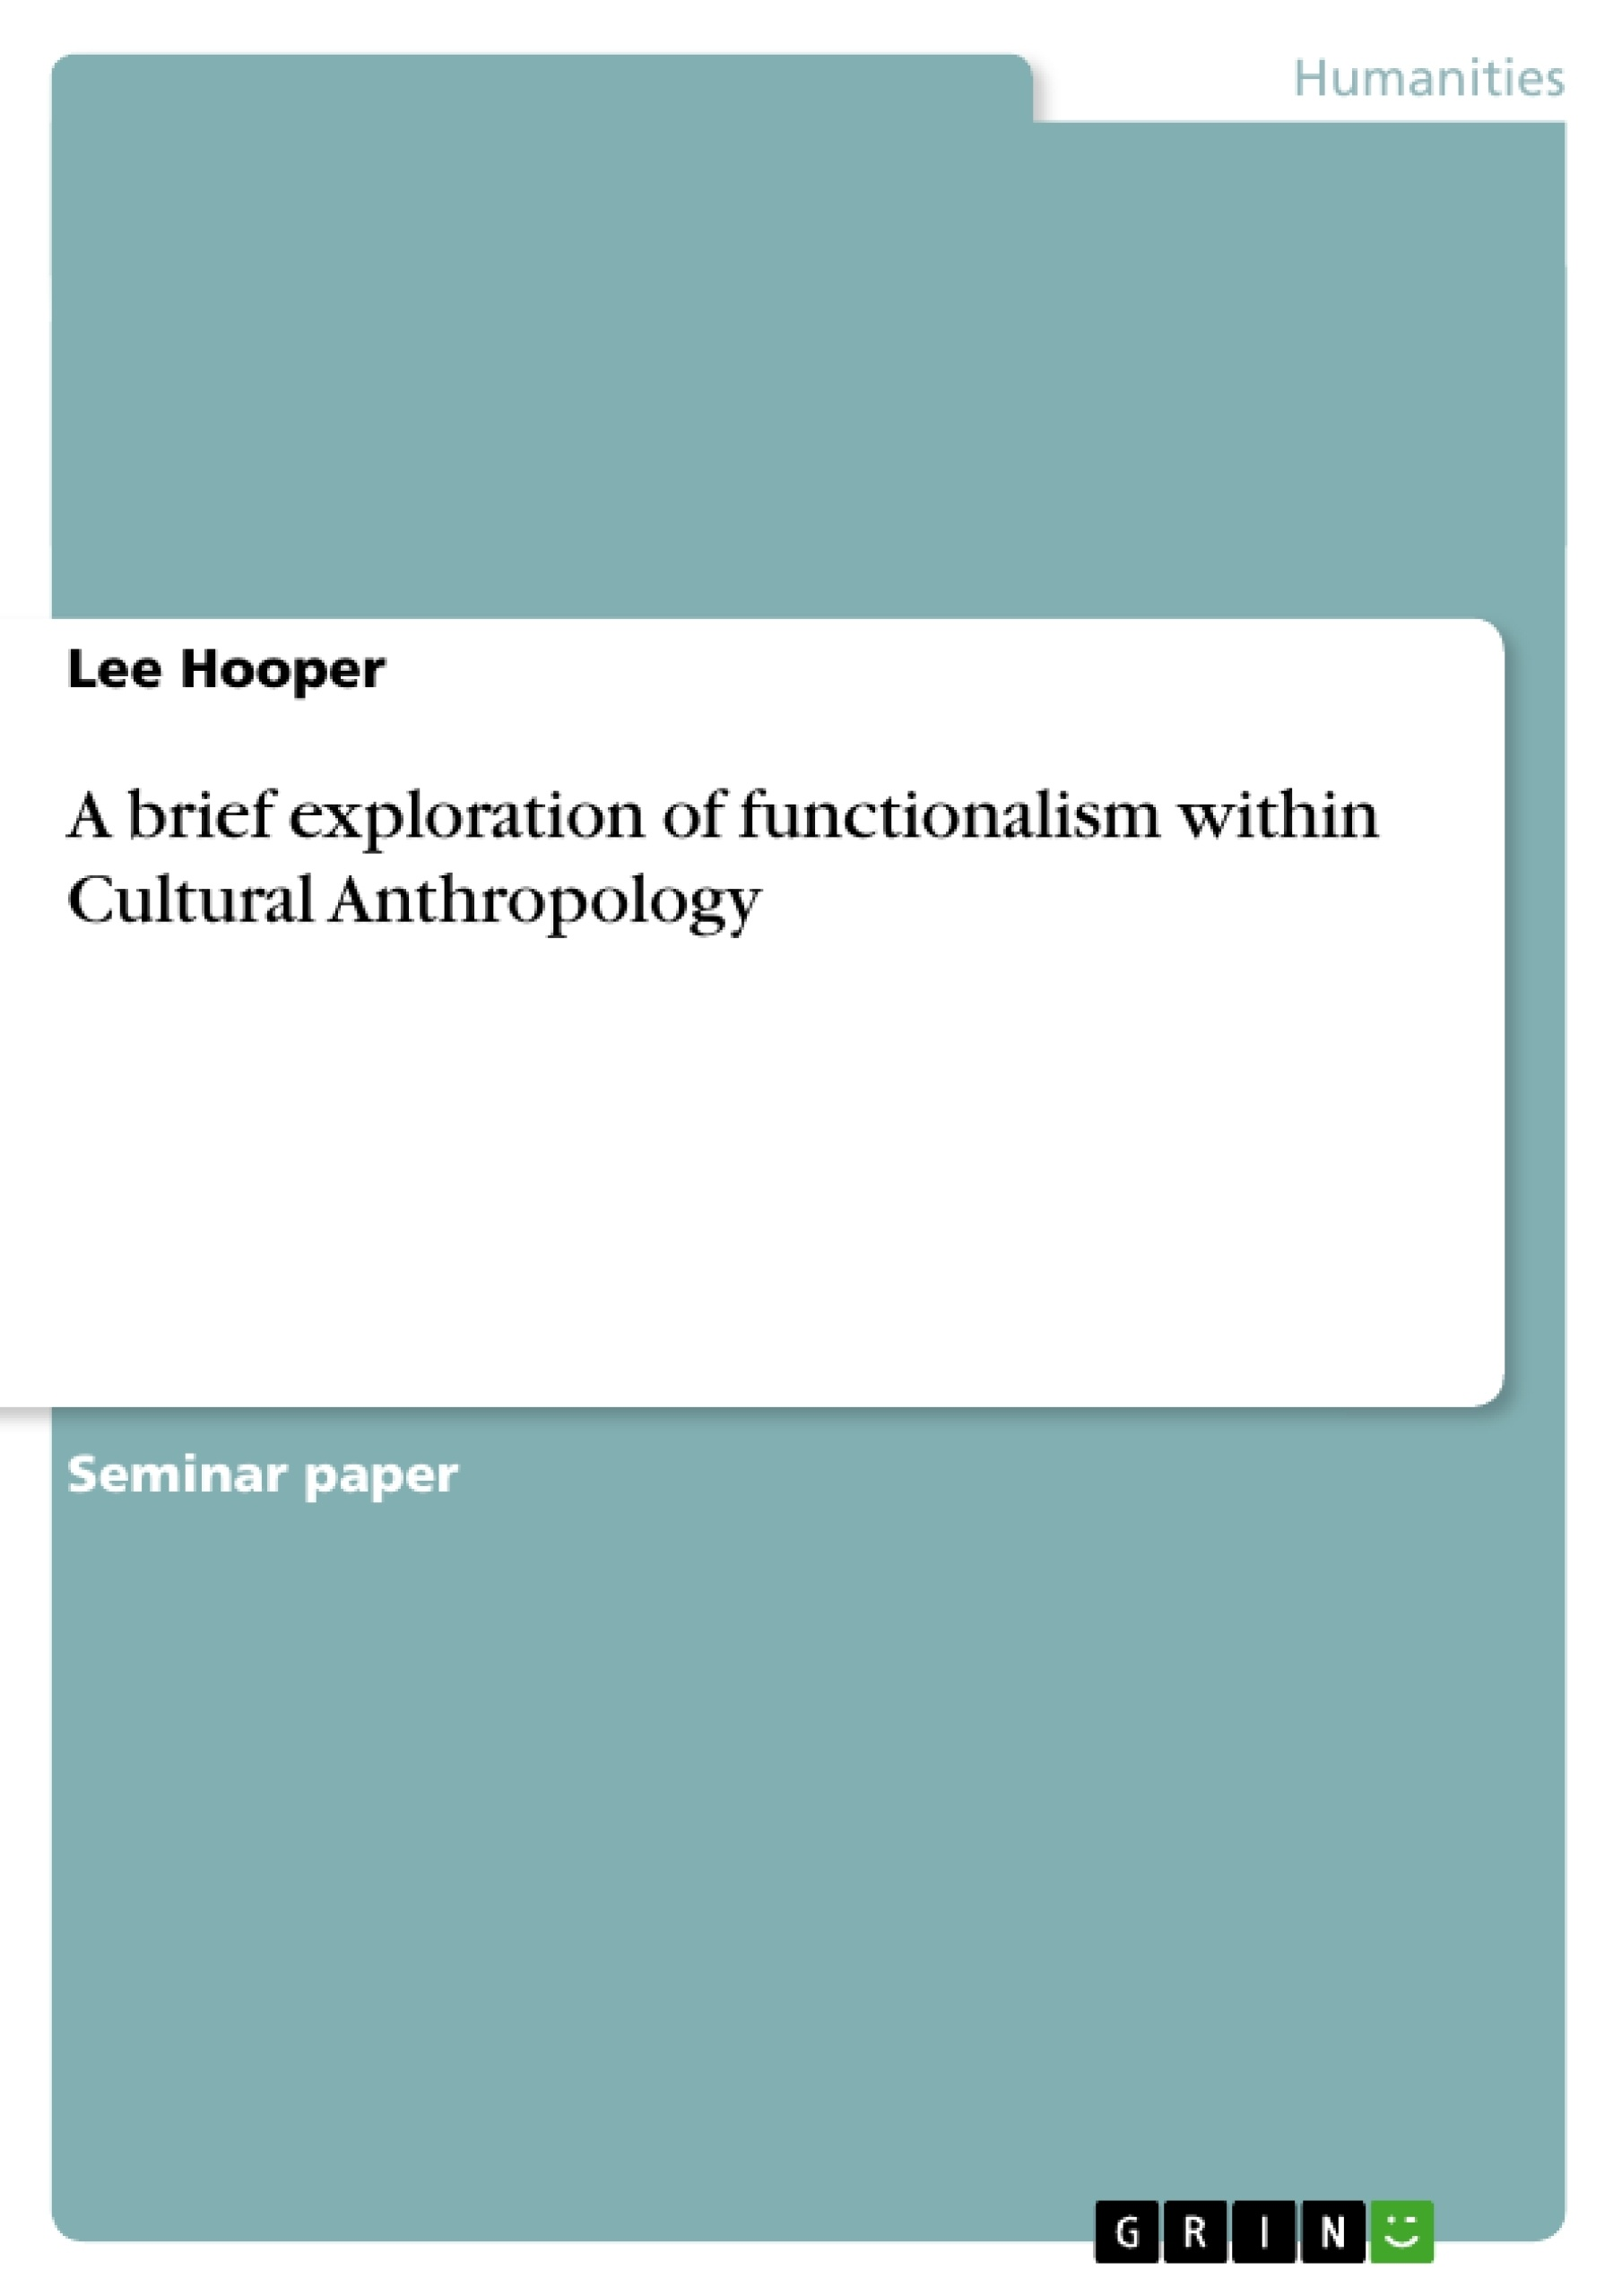 Title: A brief exploration of functionalism within Cultural Anthropology